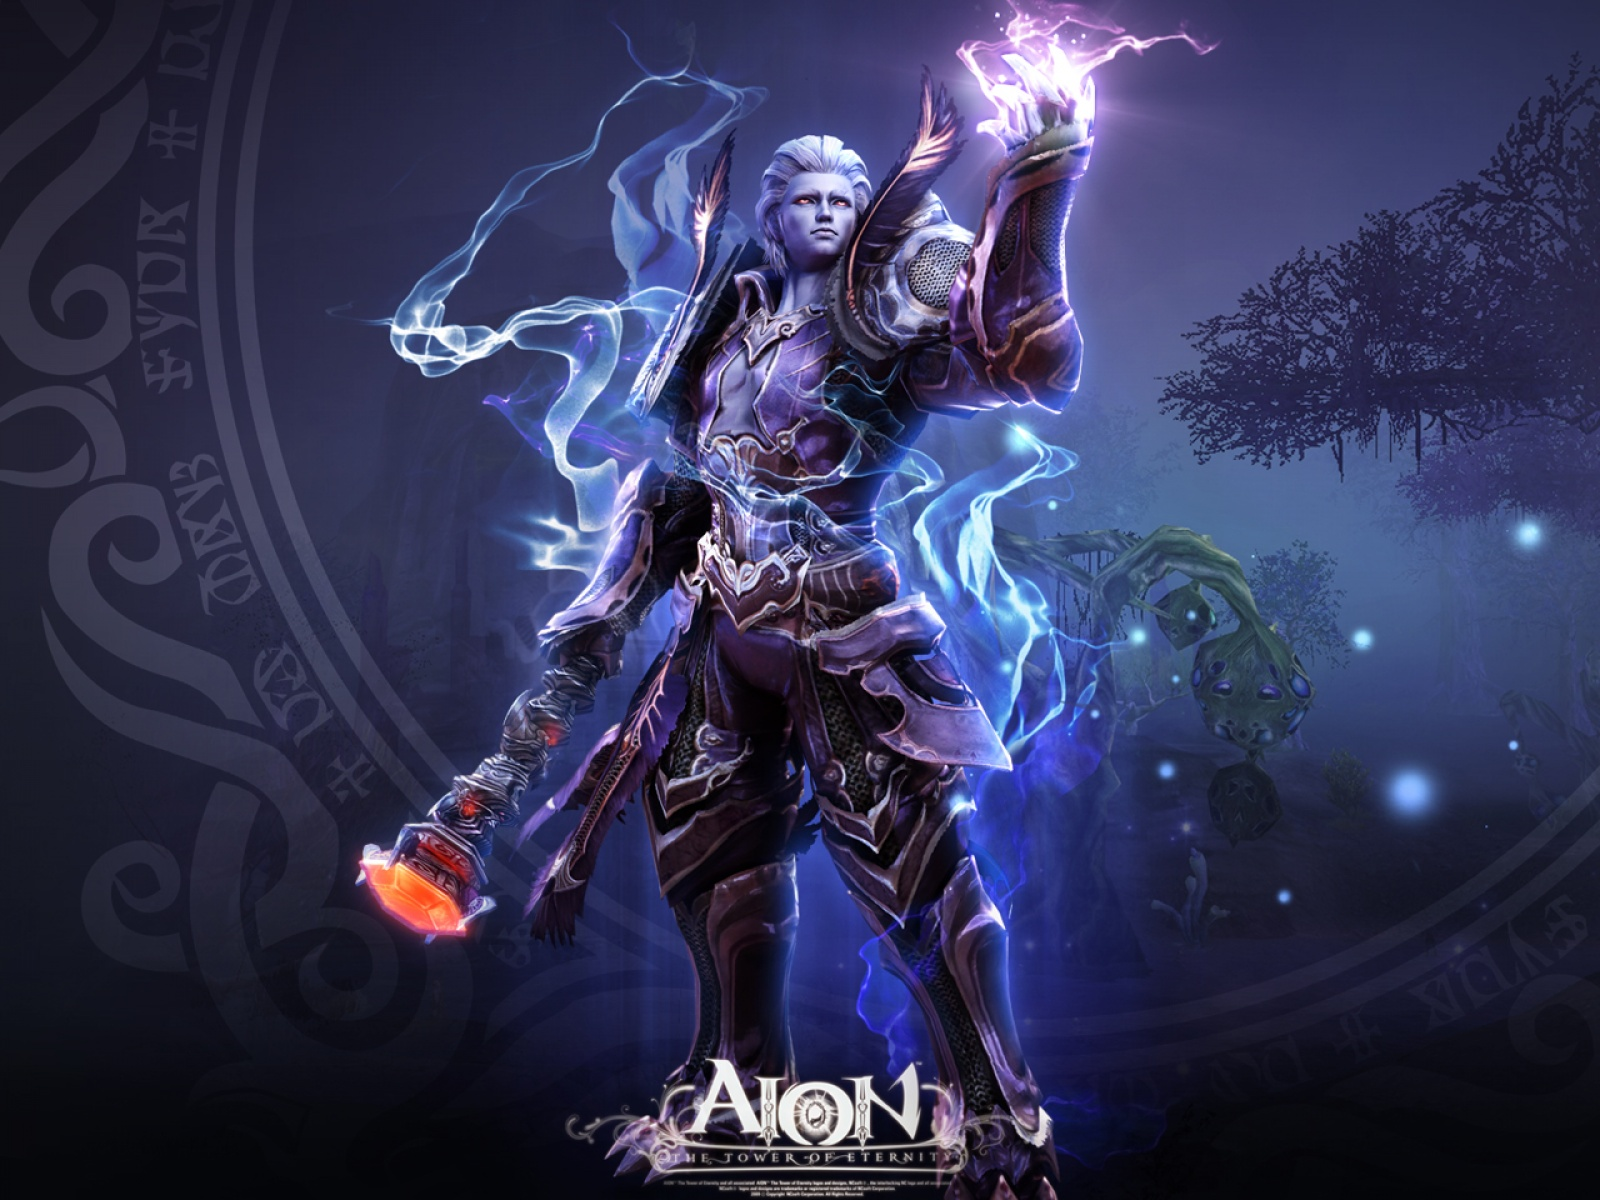 AION WallpapersAION Wallpapers Pictures Download 1600x1200